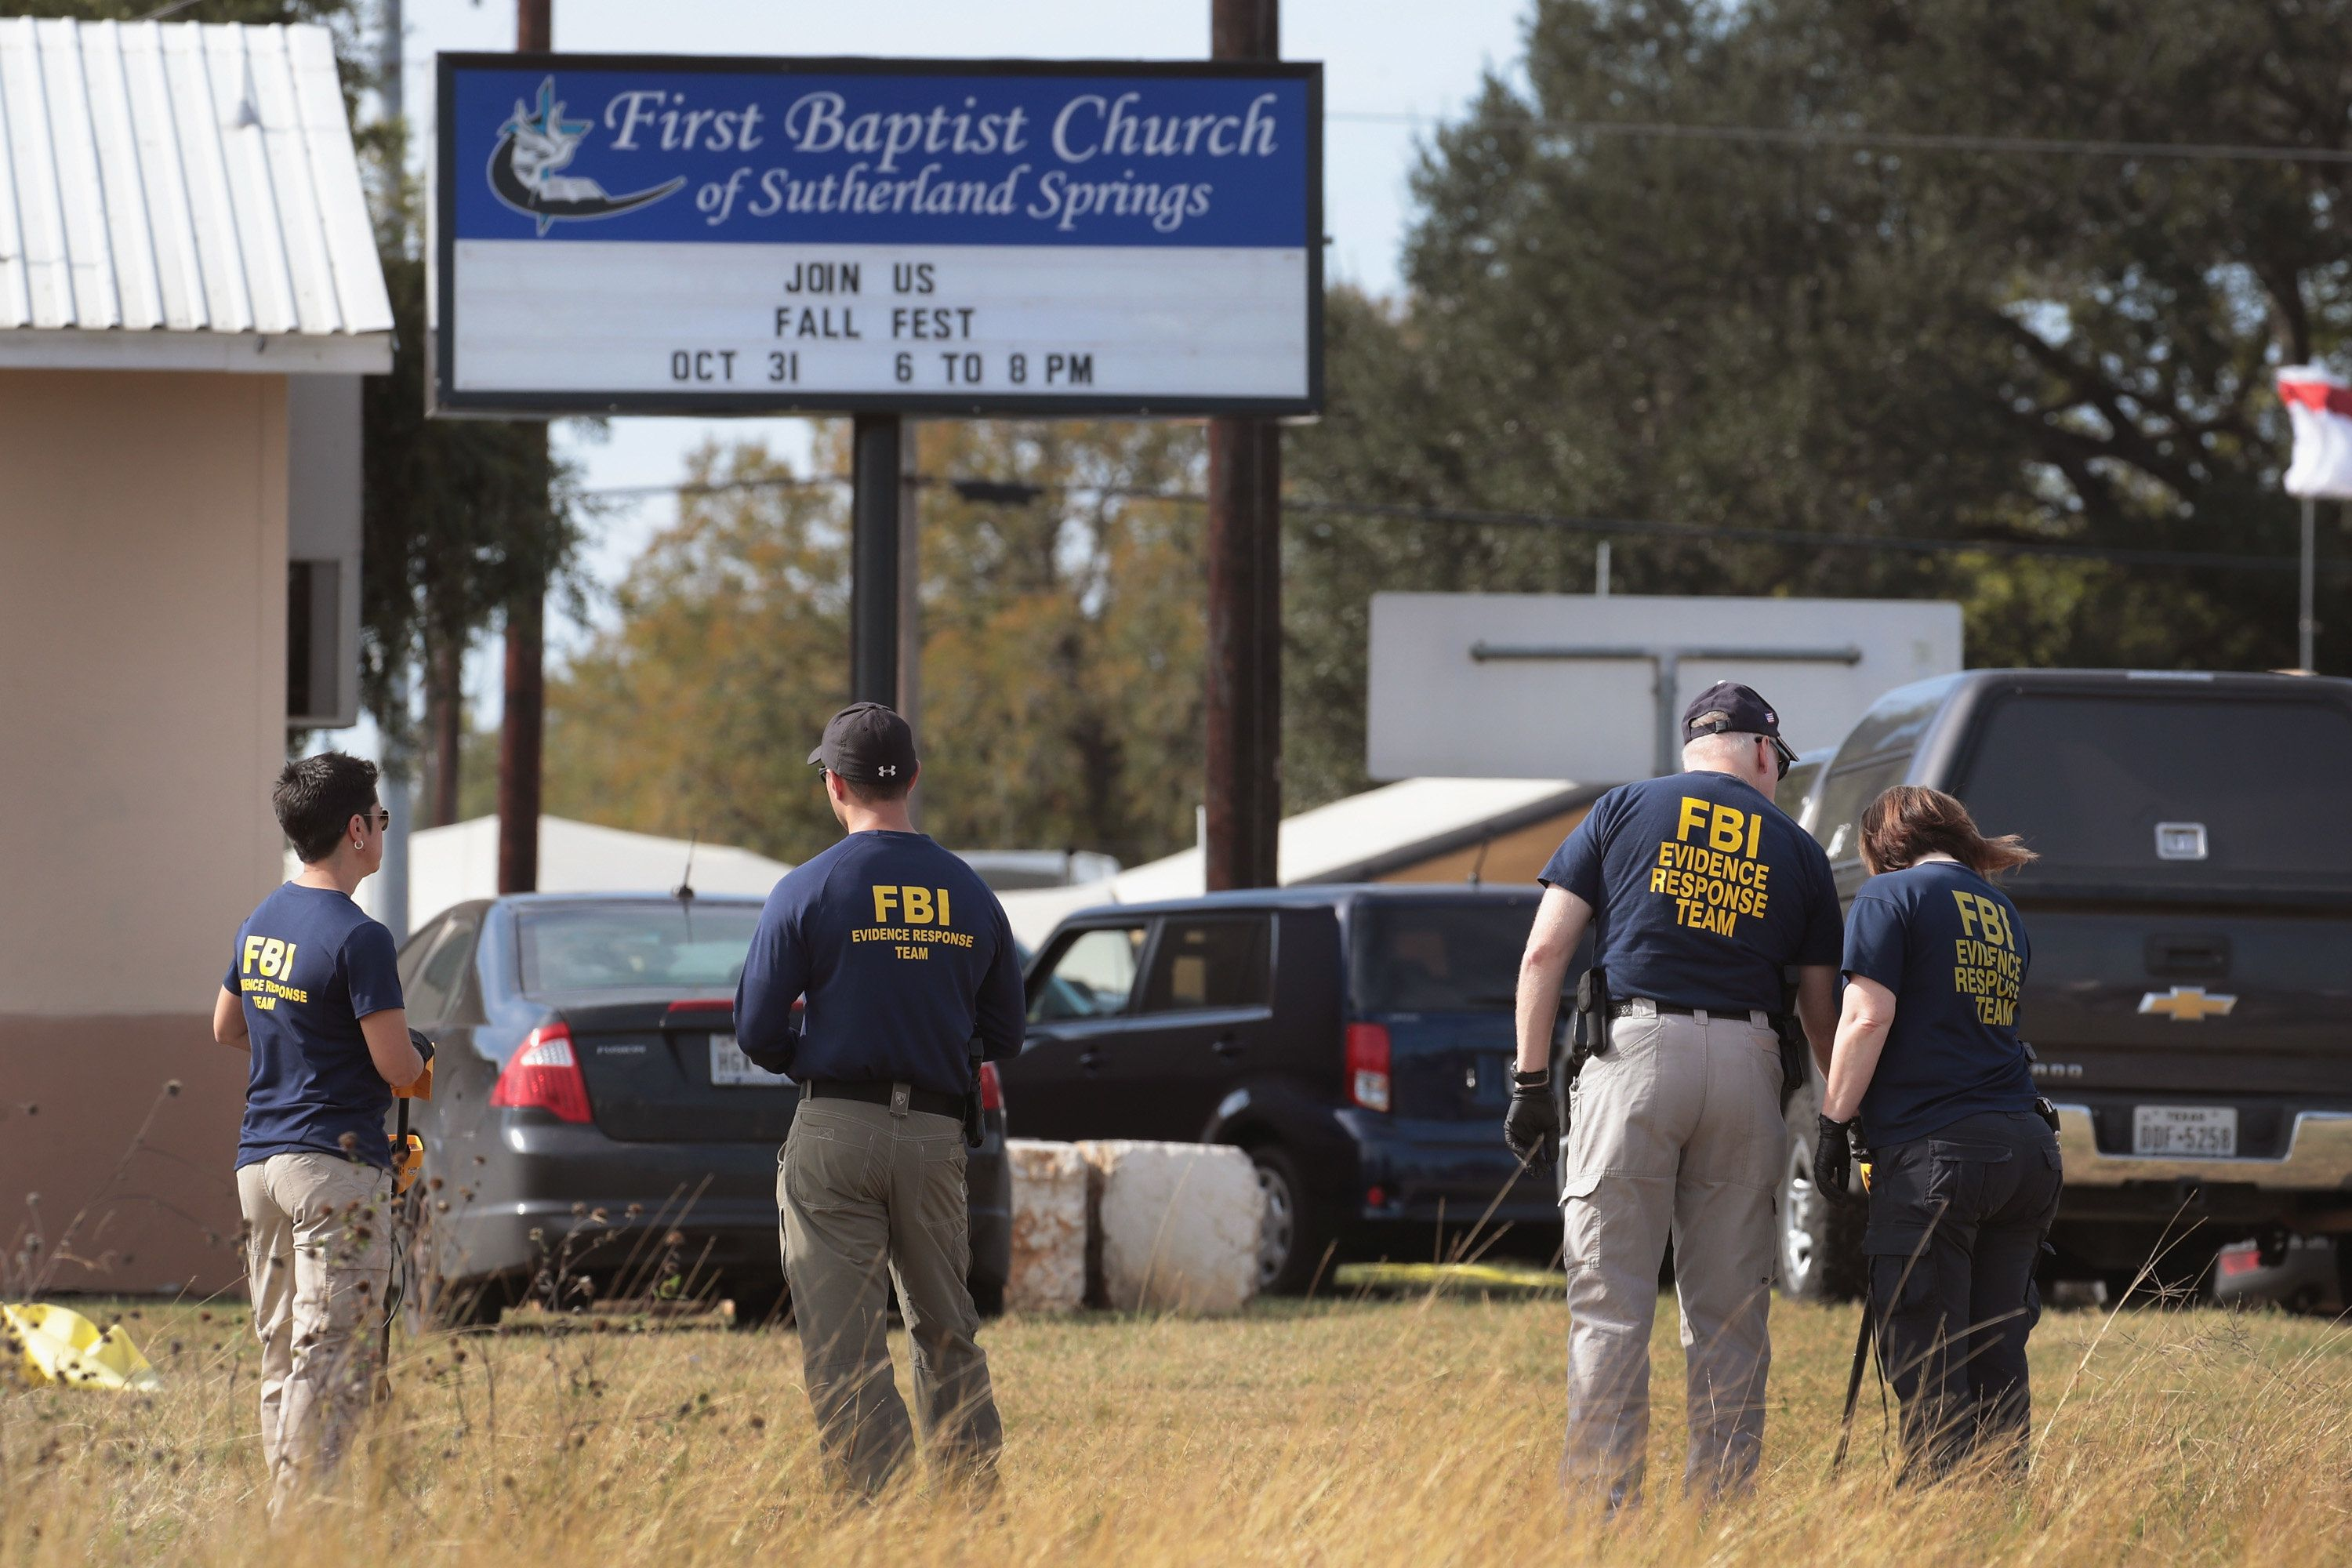 SUTHERLAND SPRINGS, TX - NOVEMBER 06:  Law enforcement officials continue their investigation at the First Baptist Church of Sutherland Springs on November 6, 2017 in Sutherland Springs, Texas. On November 5 a gunman, Devin Patrick Kelley, killed 26 people at the church and wounded 20 others when he opened fire during a Sunday service.  (Photo by Scott Olson/Getty Images)